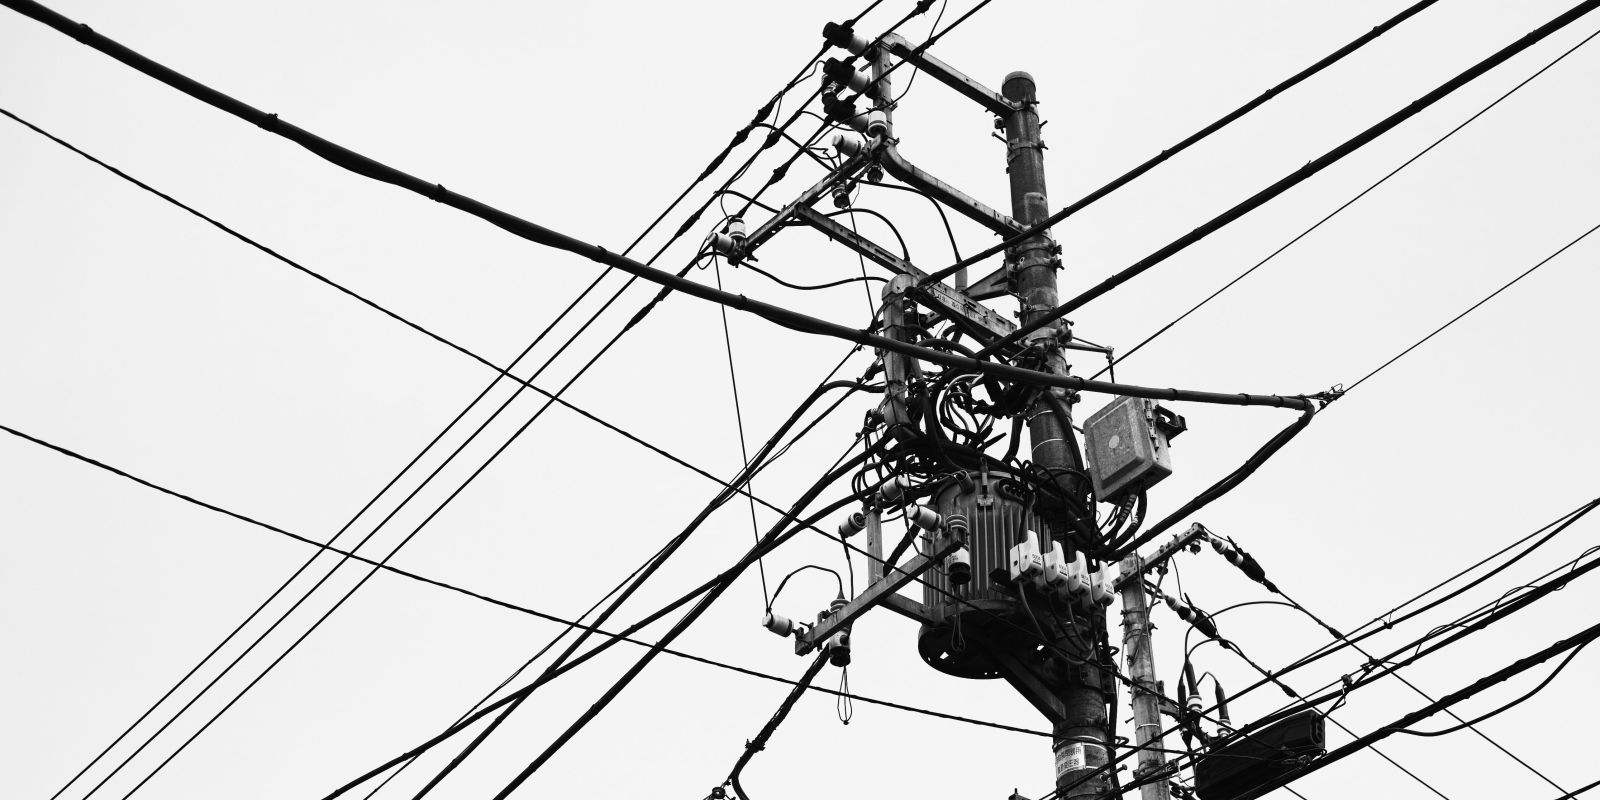 Tokyo S 7 Billion Quest To Get Rid Of Utility Poles Asap